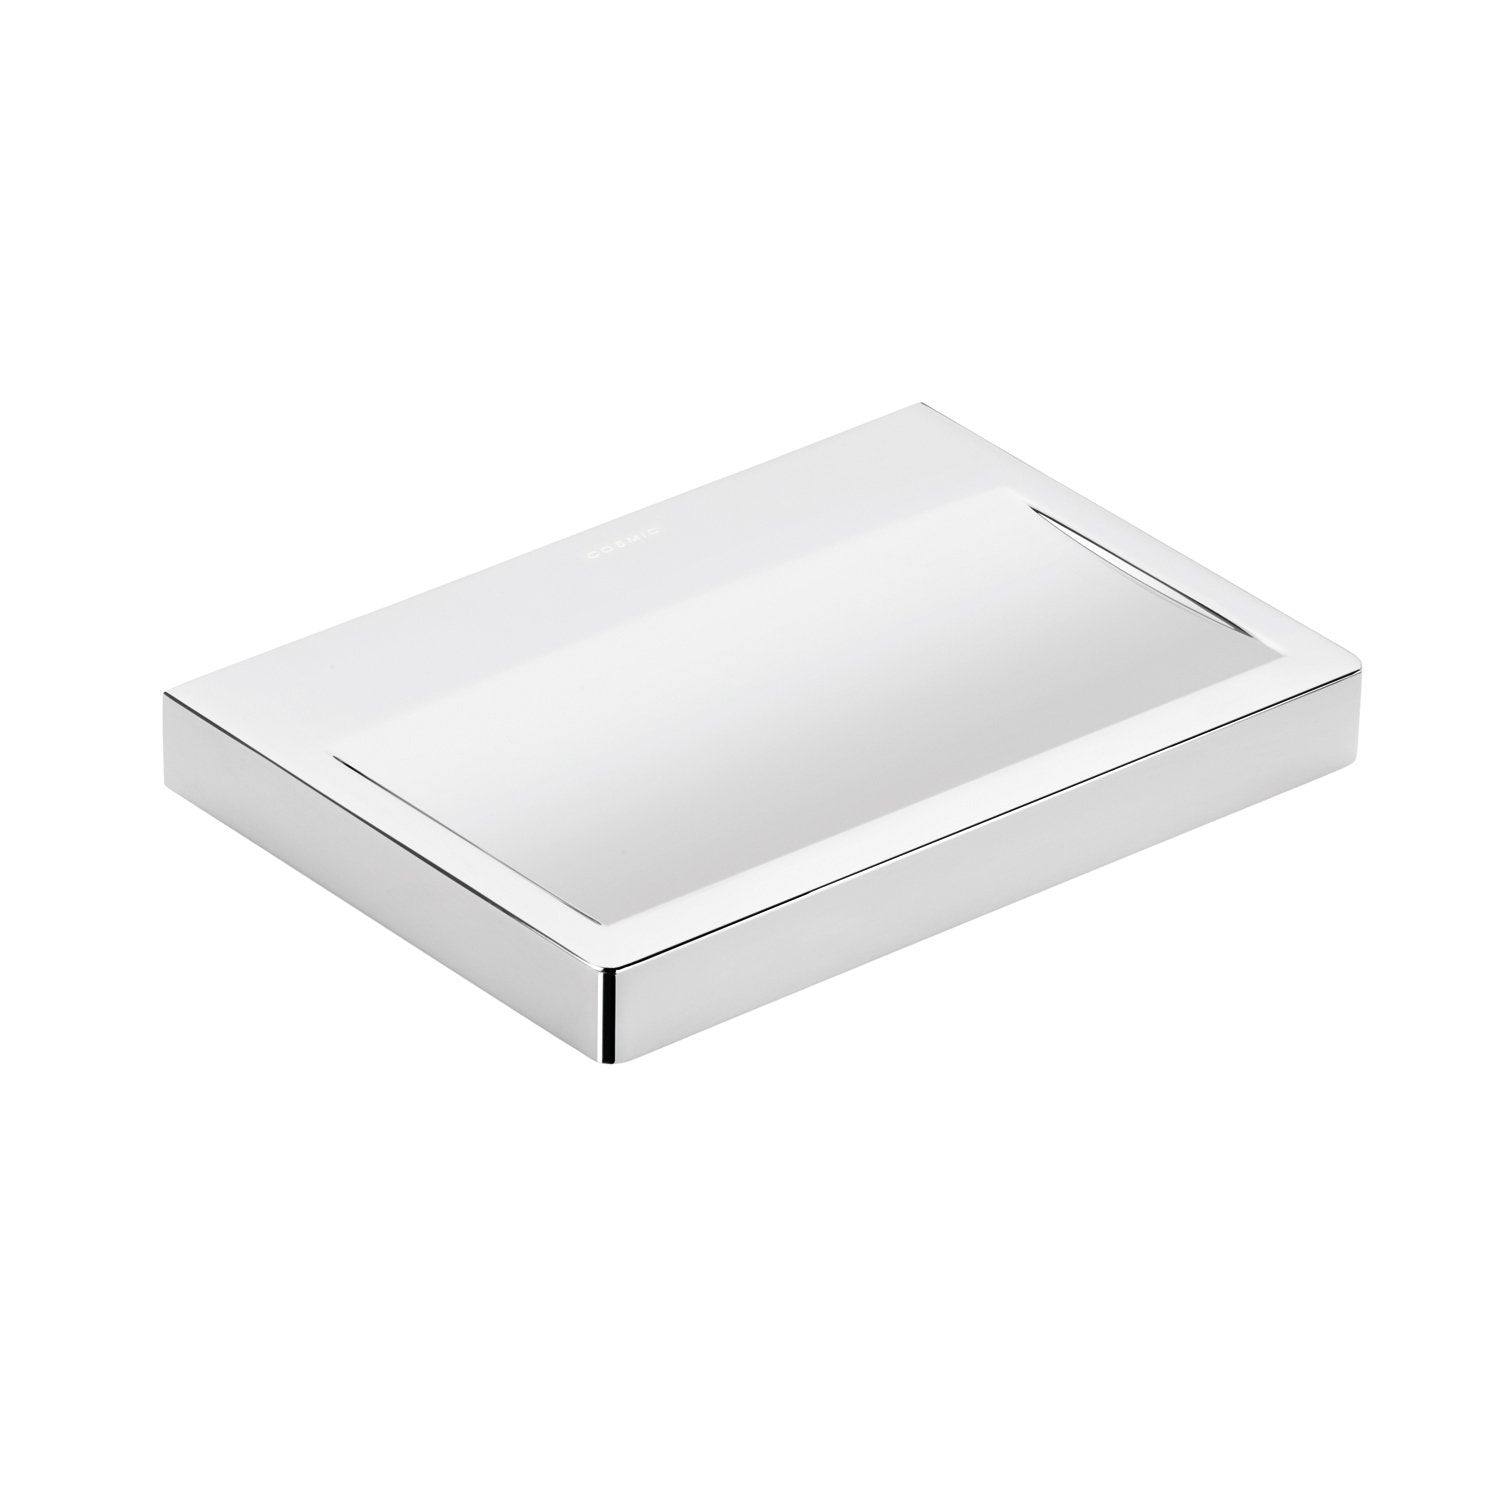 COSMIC Extreme Soap Dish, Wall Mount, Brass Body, Chrome Finish, 5-1/2 x 13/16 x 3-15/16 Inches (2530132)